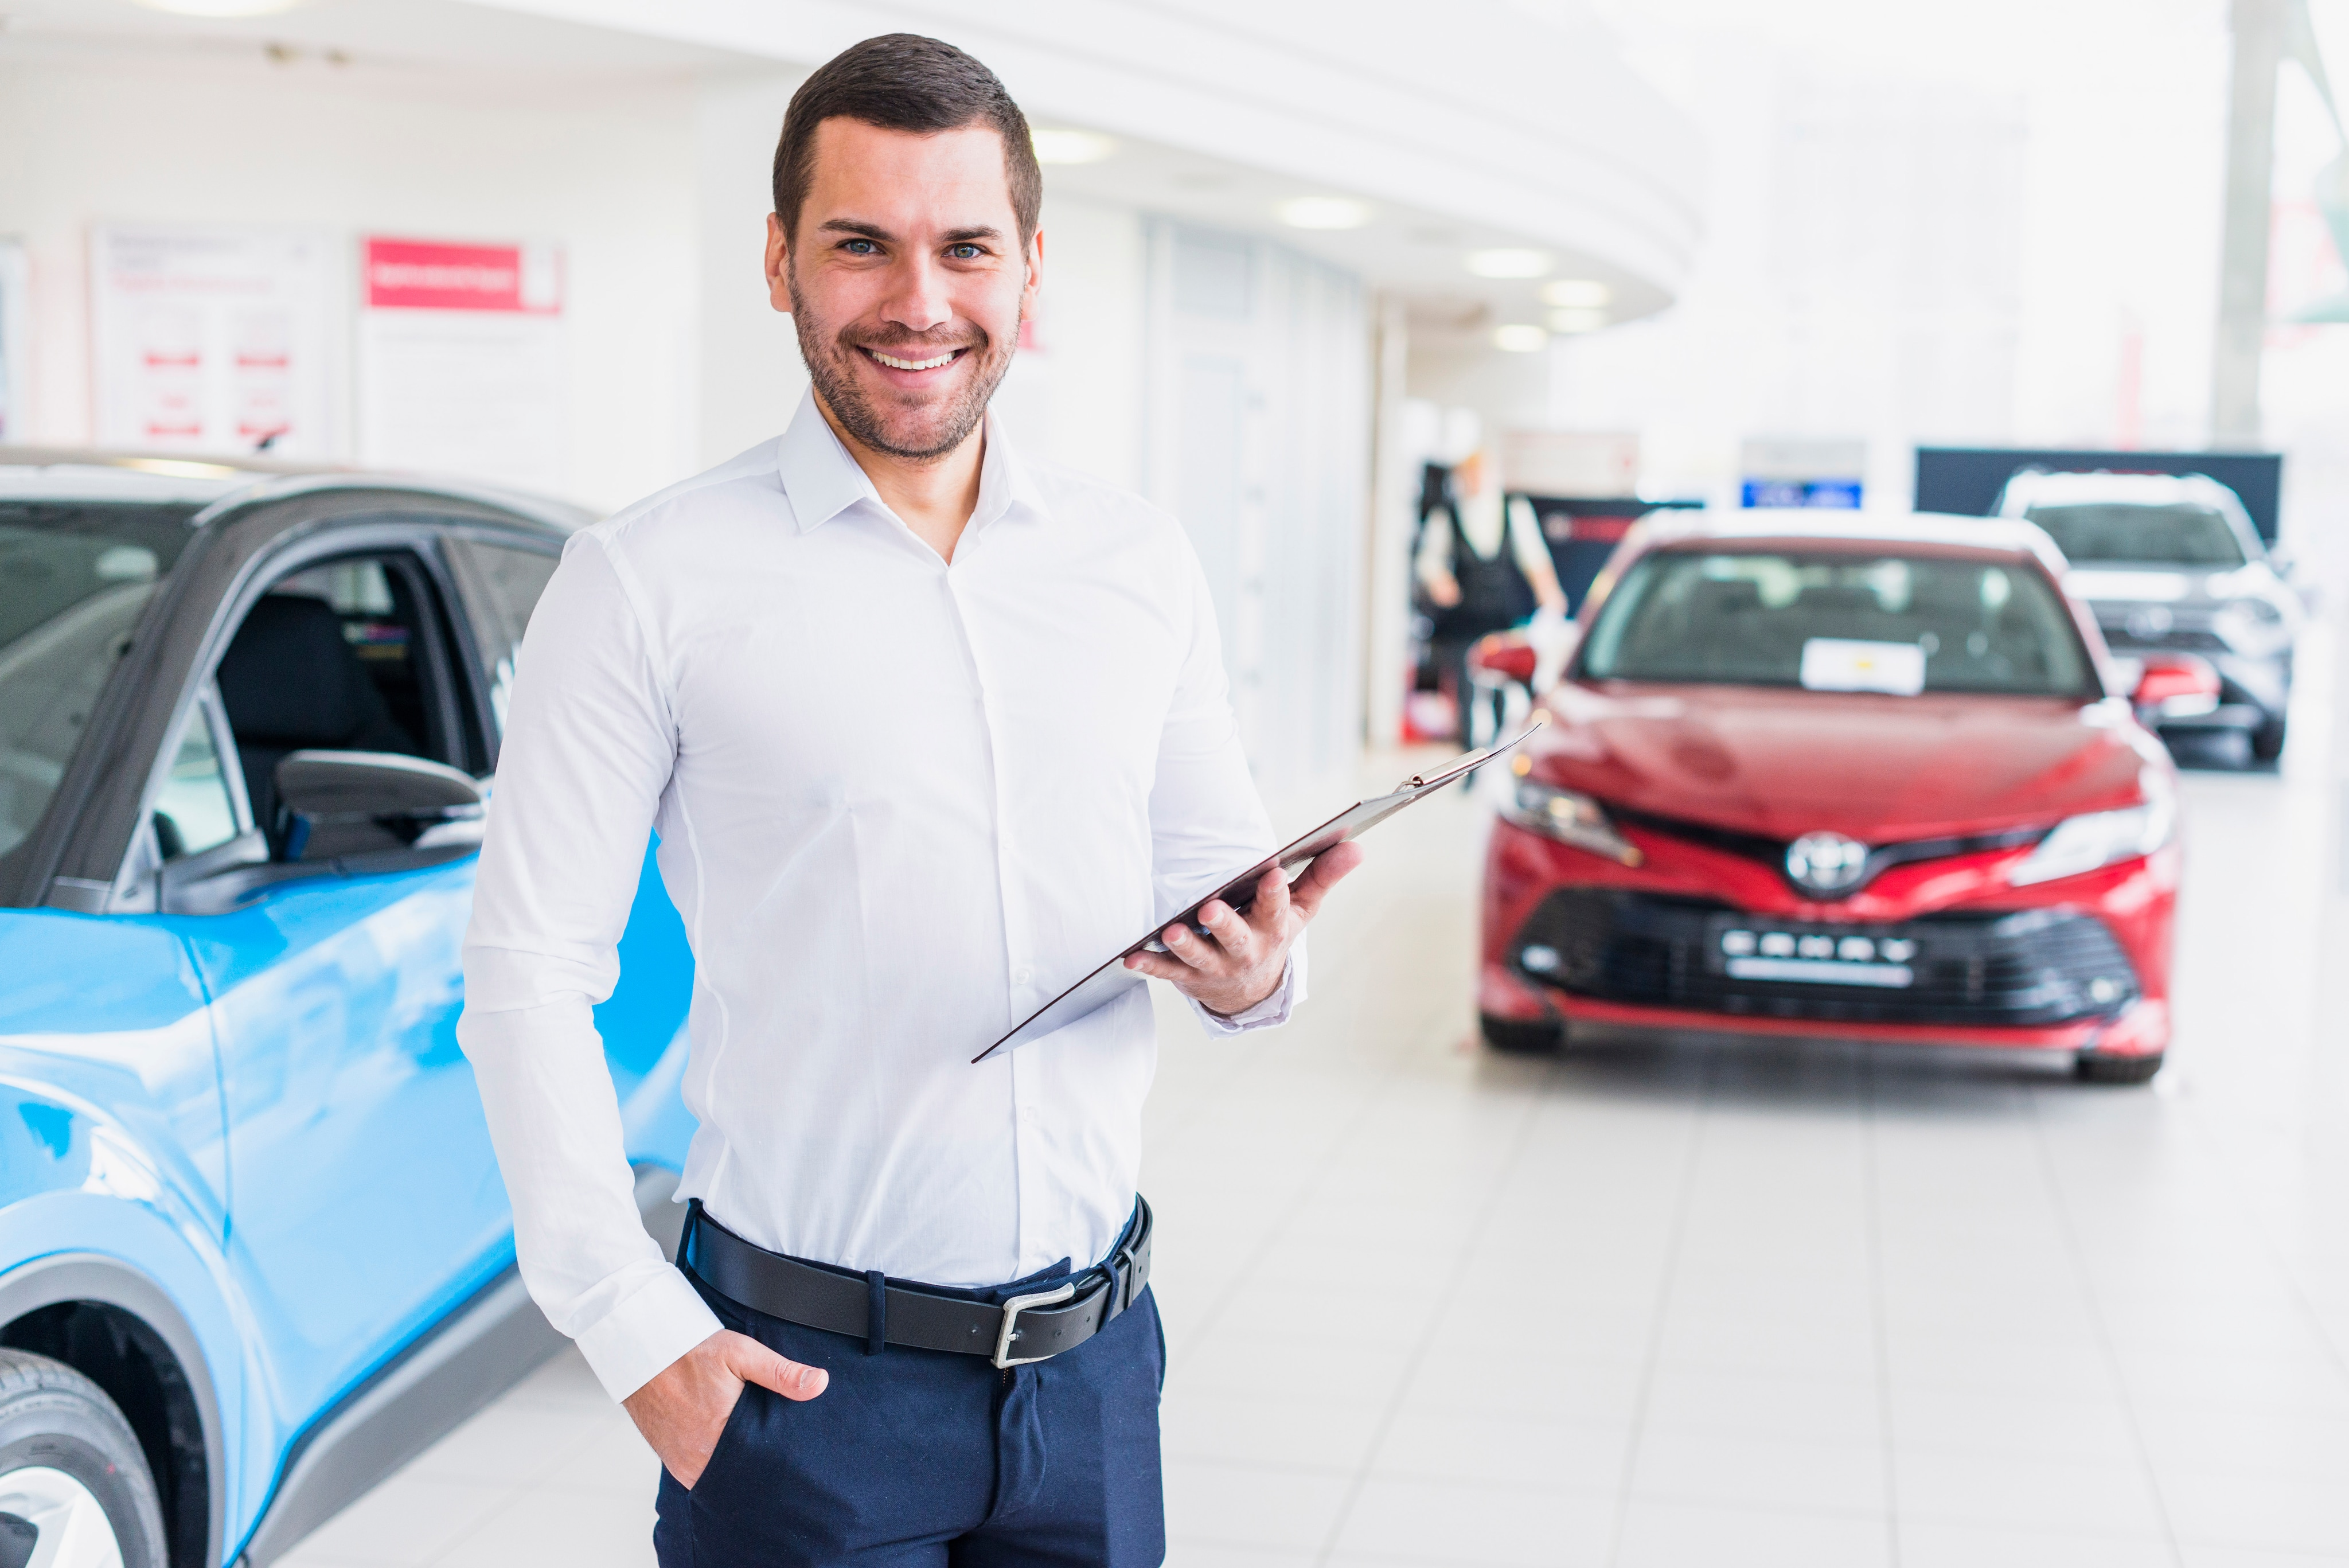 Boch Toyota is a Family Owned Dealership near Boston, MA | Toyota car salesman standing in dealer showroom holding clipboard